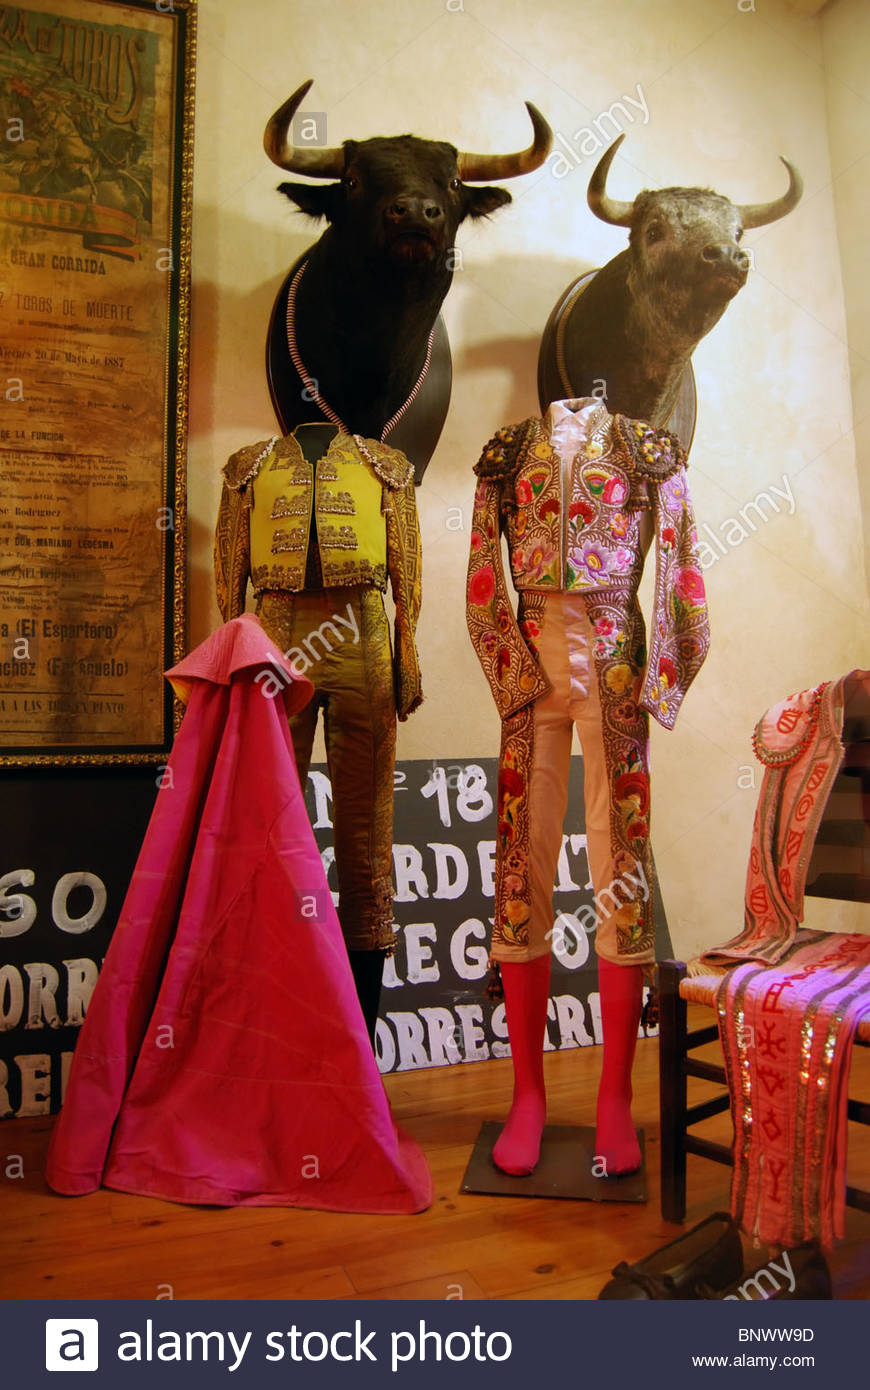 Matador costumes in bullfighting museum Ronda Malaga Province Andalucia Spain Western Europe. & Matador costumes in bullfighting museum Ronda Malaga Province ...